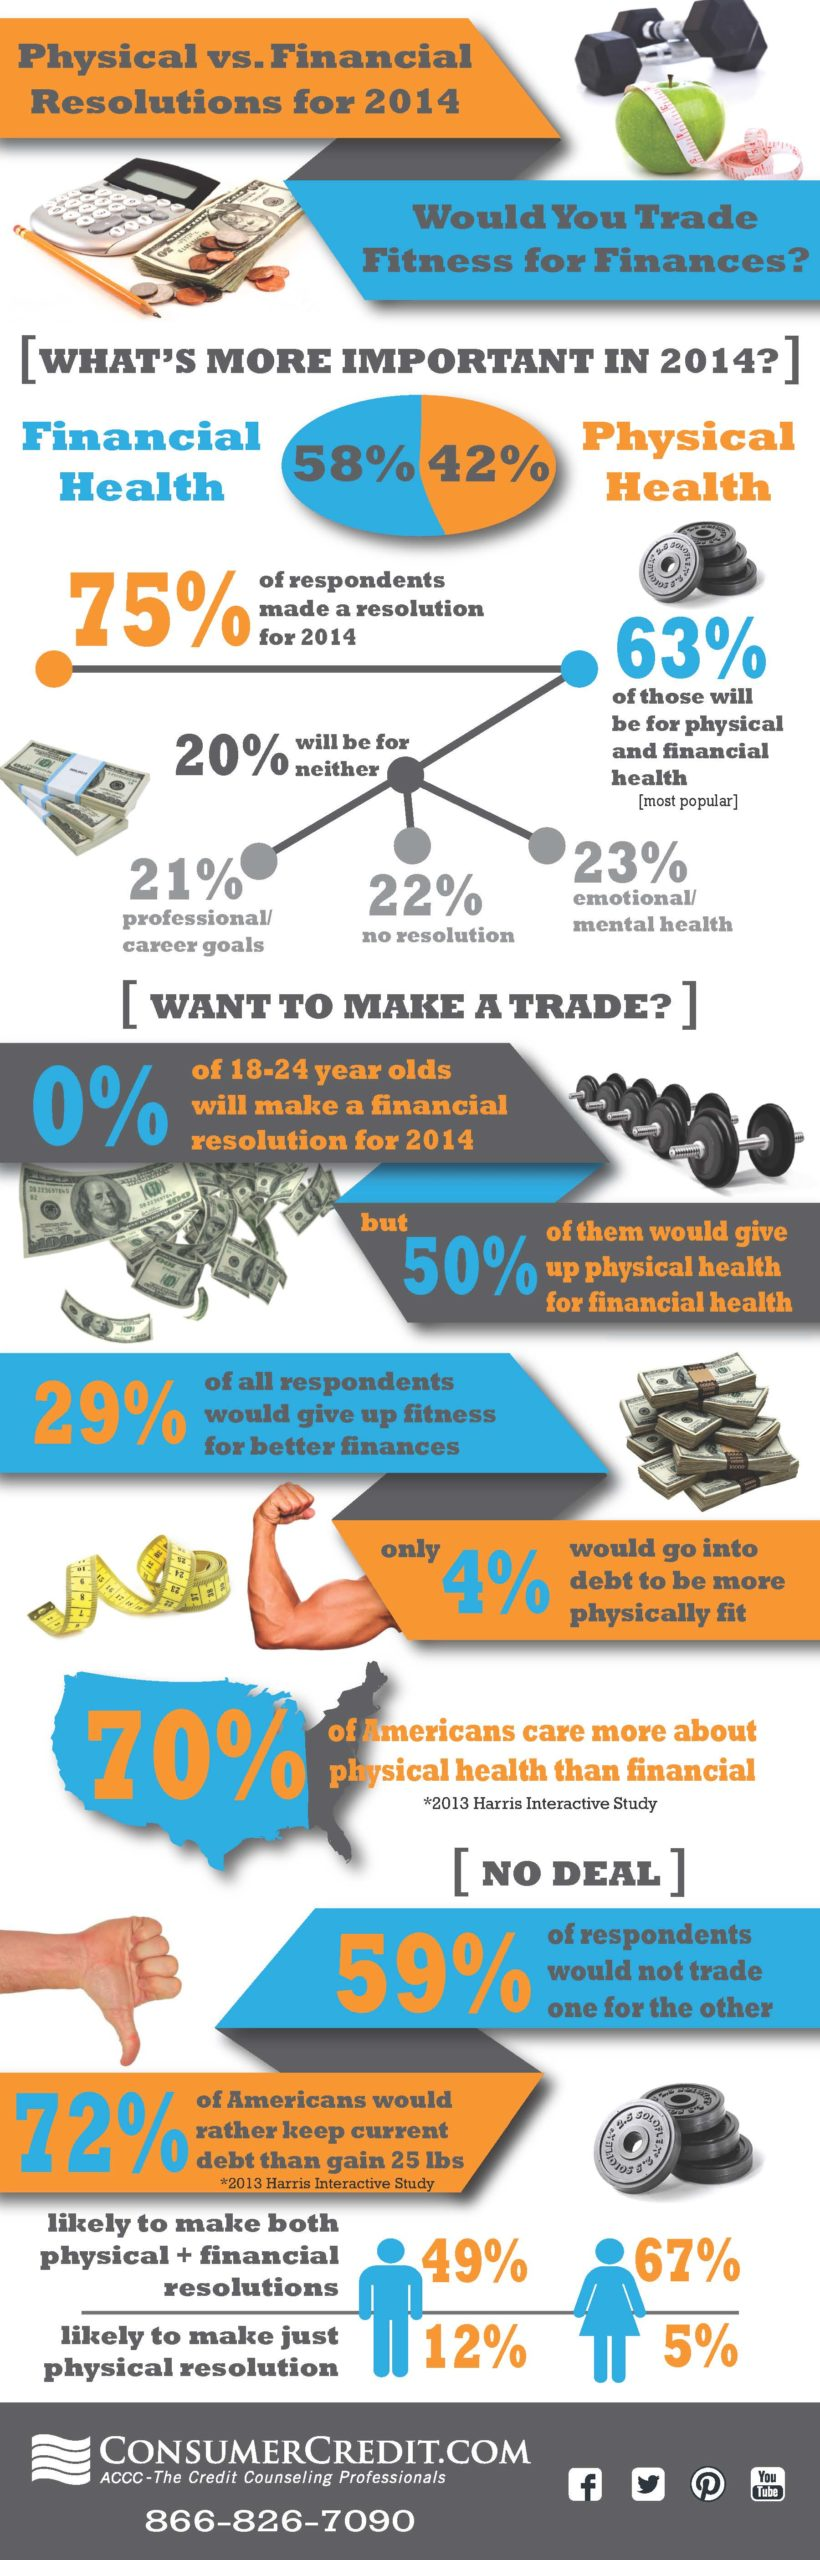 Infographic Physical Vs Financial Resolutions For